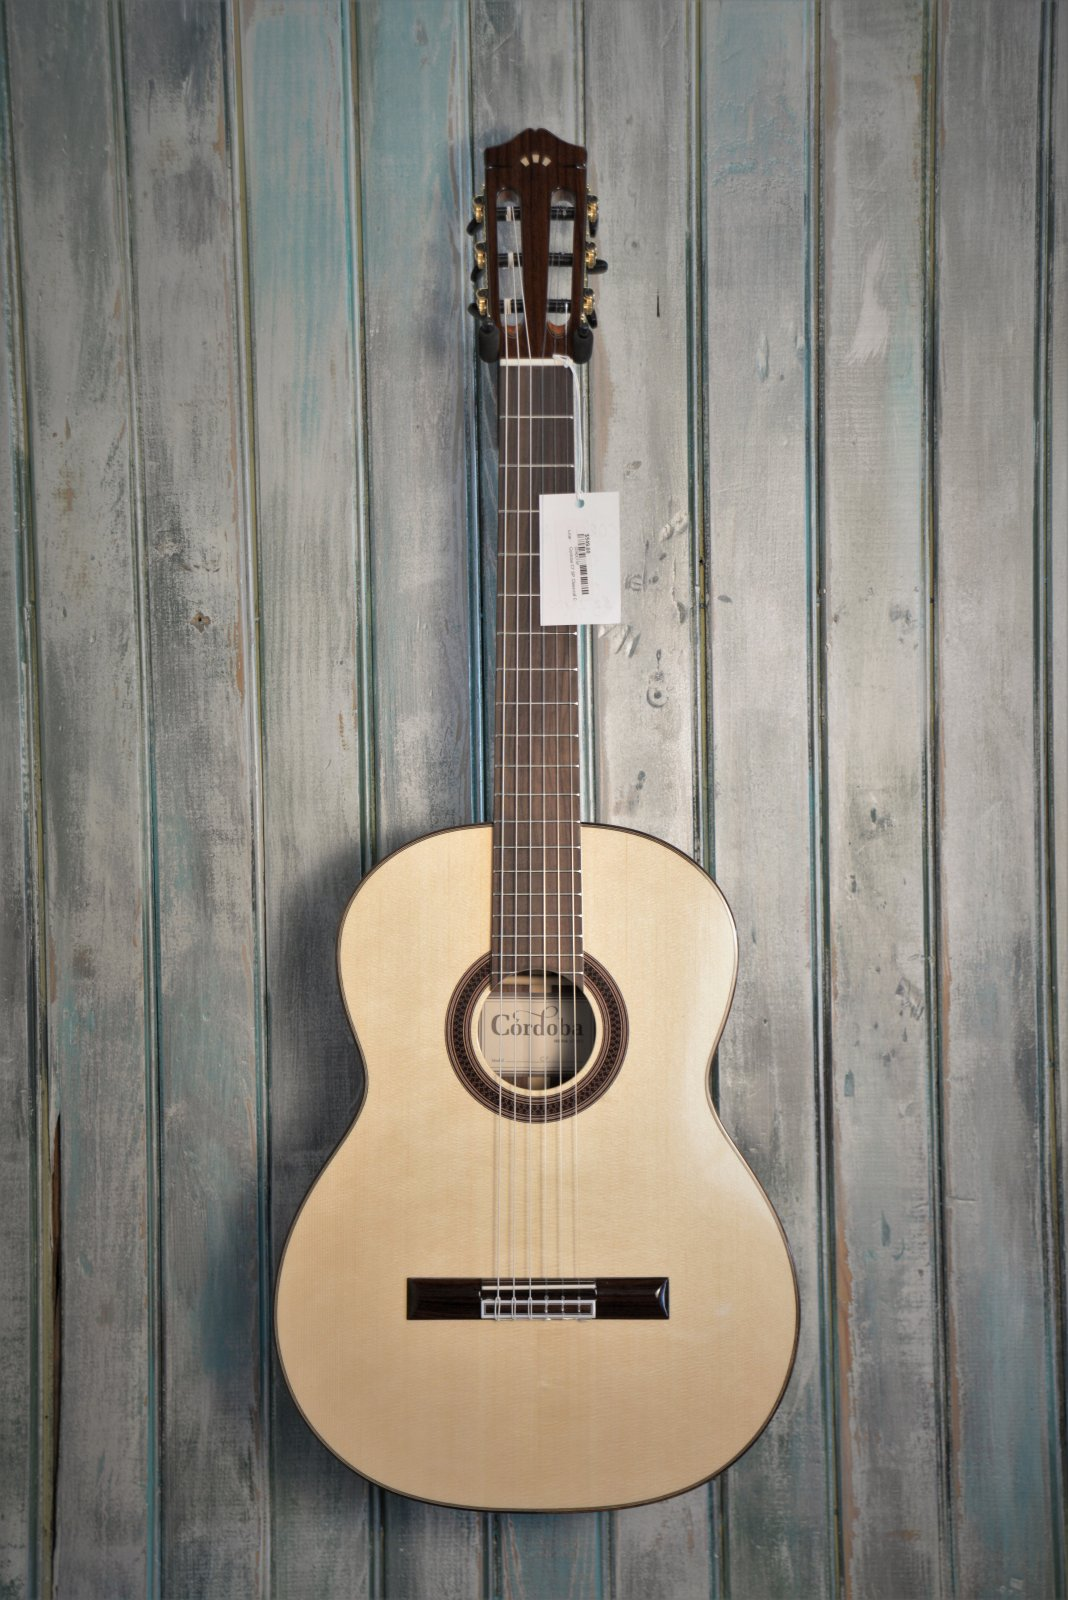 Cordoba C7 SP Classical Guitar with Solid Spruce Top